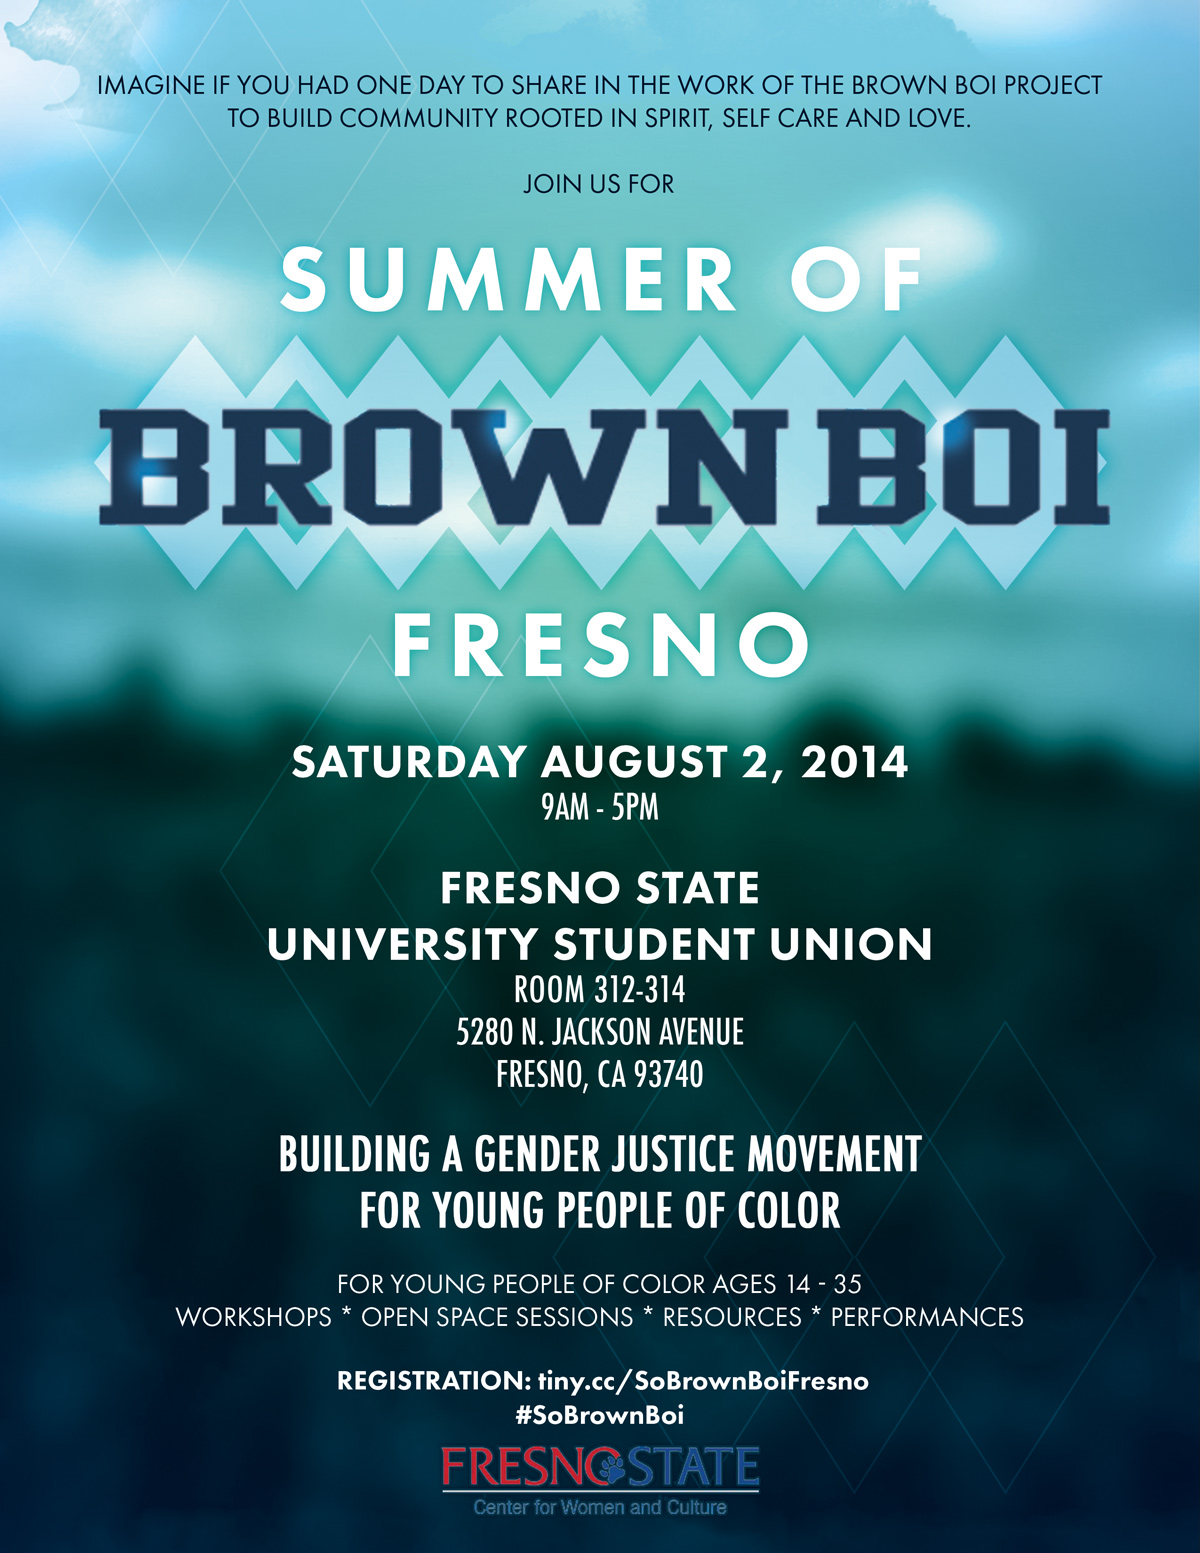 summer-of-bb-flyer-fresno-web.jpg